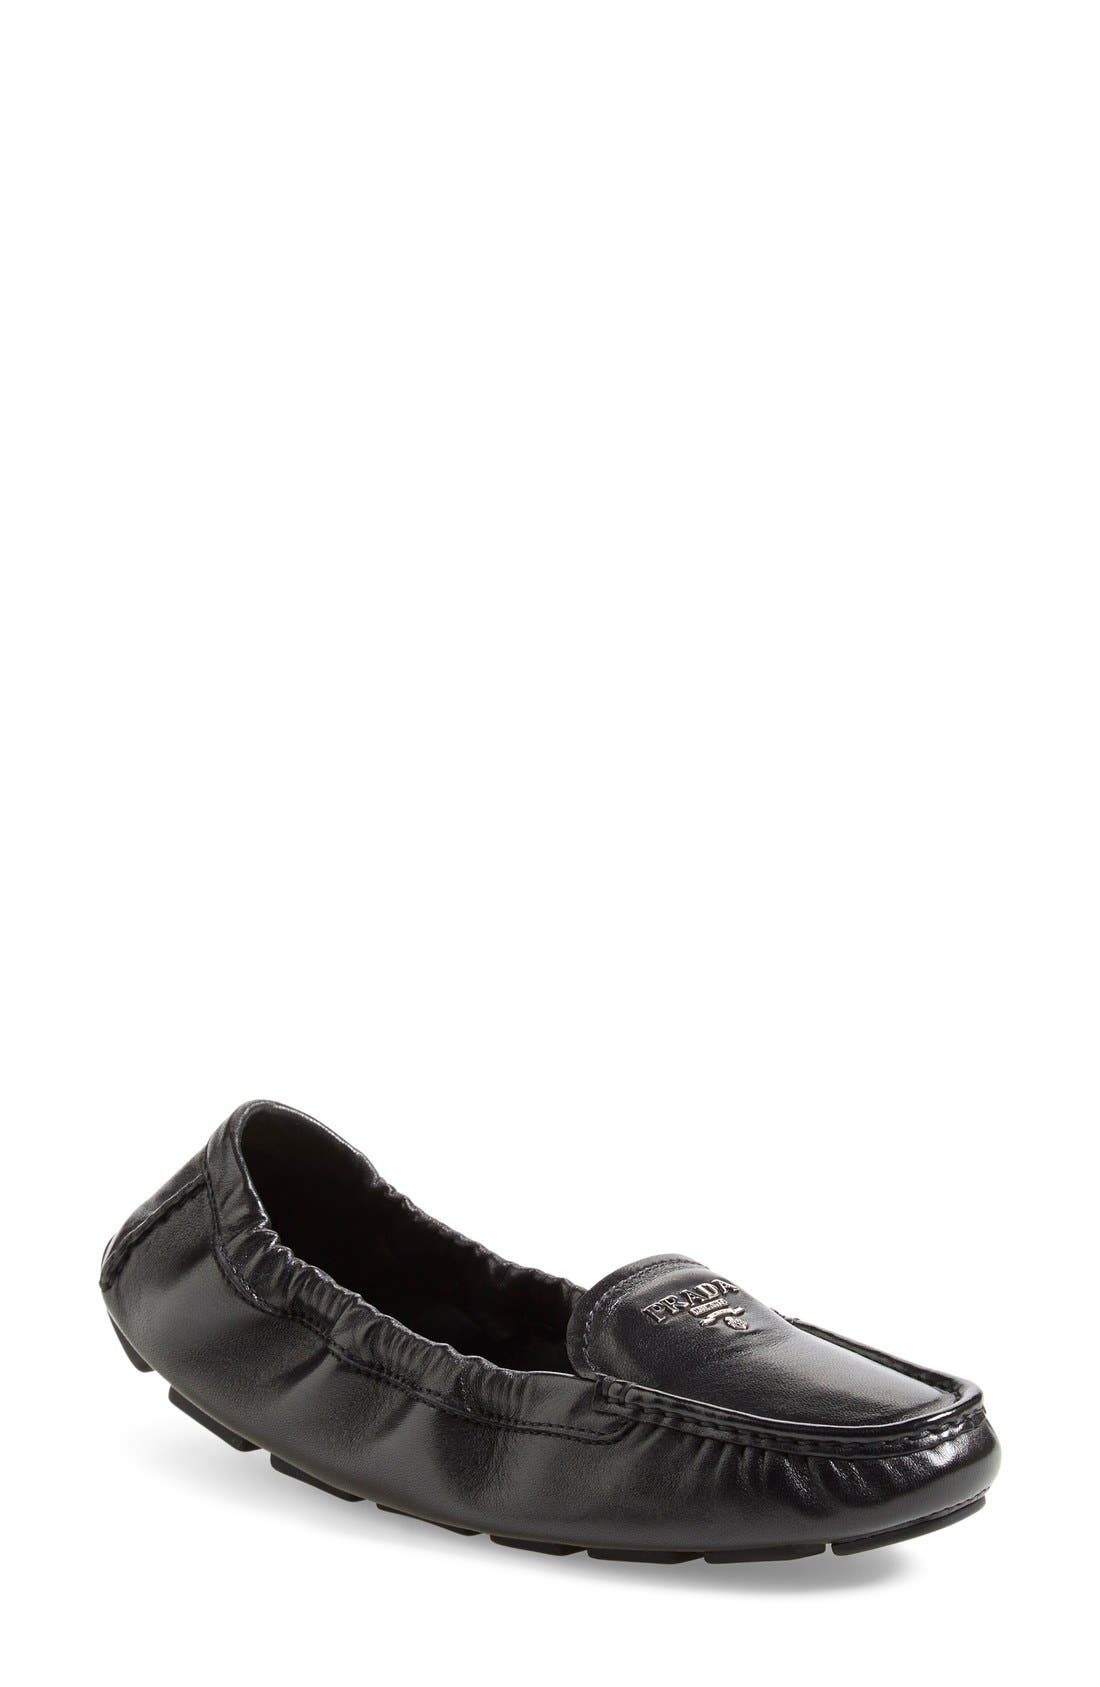 'Scrunch' Driving Loafer,                         Main,                         color, Black Leather